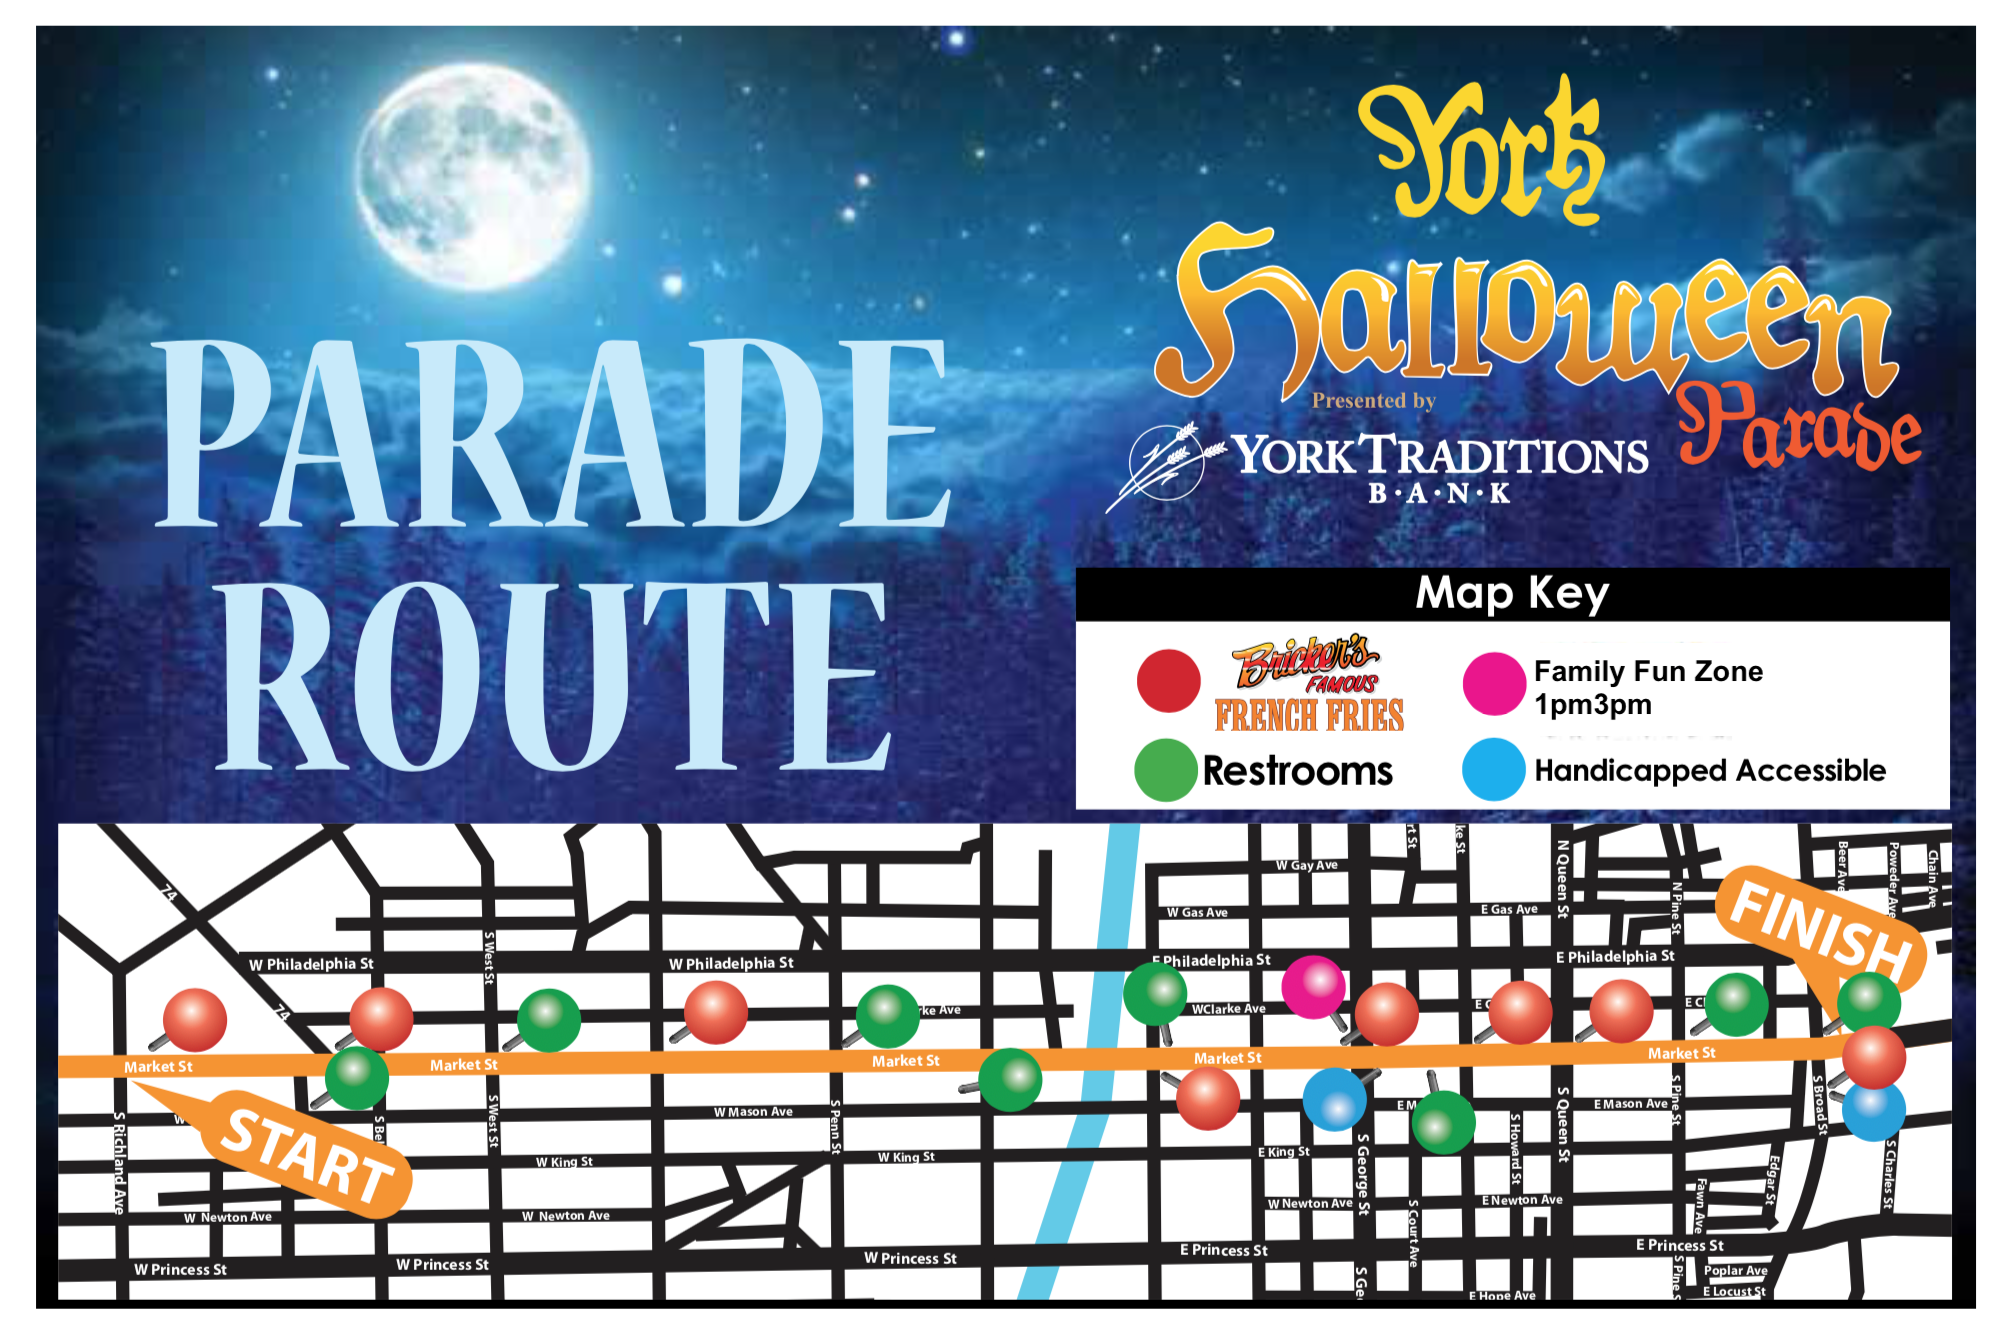 March Down Market - Start, Finish, Food, & Family Fun - Find It All Right Here!